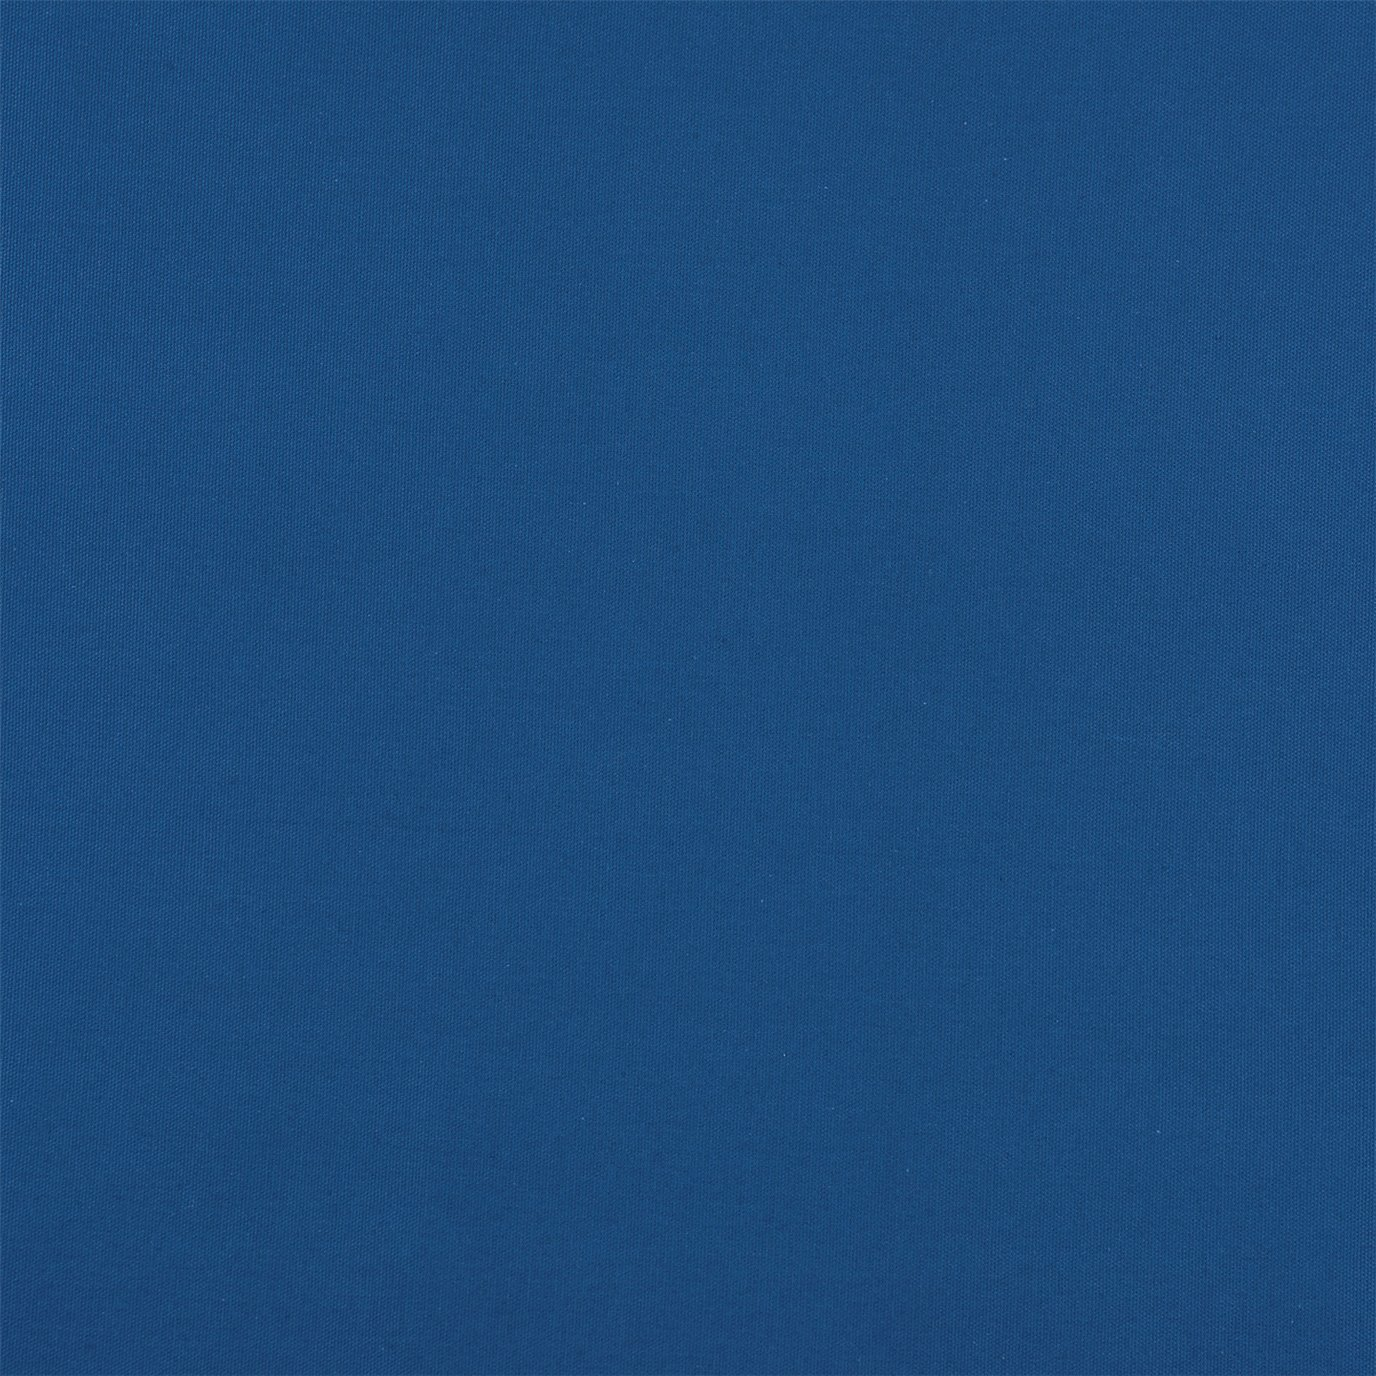 West Bay - Solid Blue